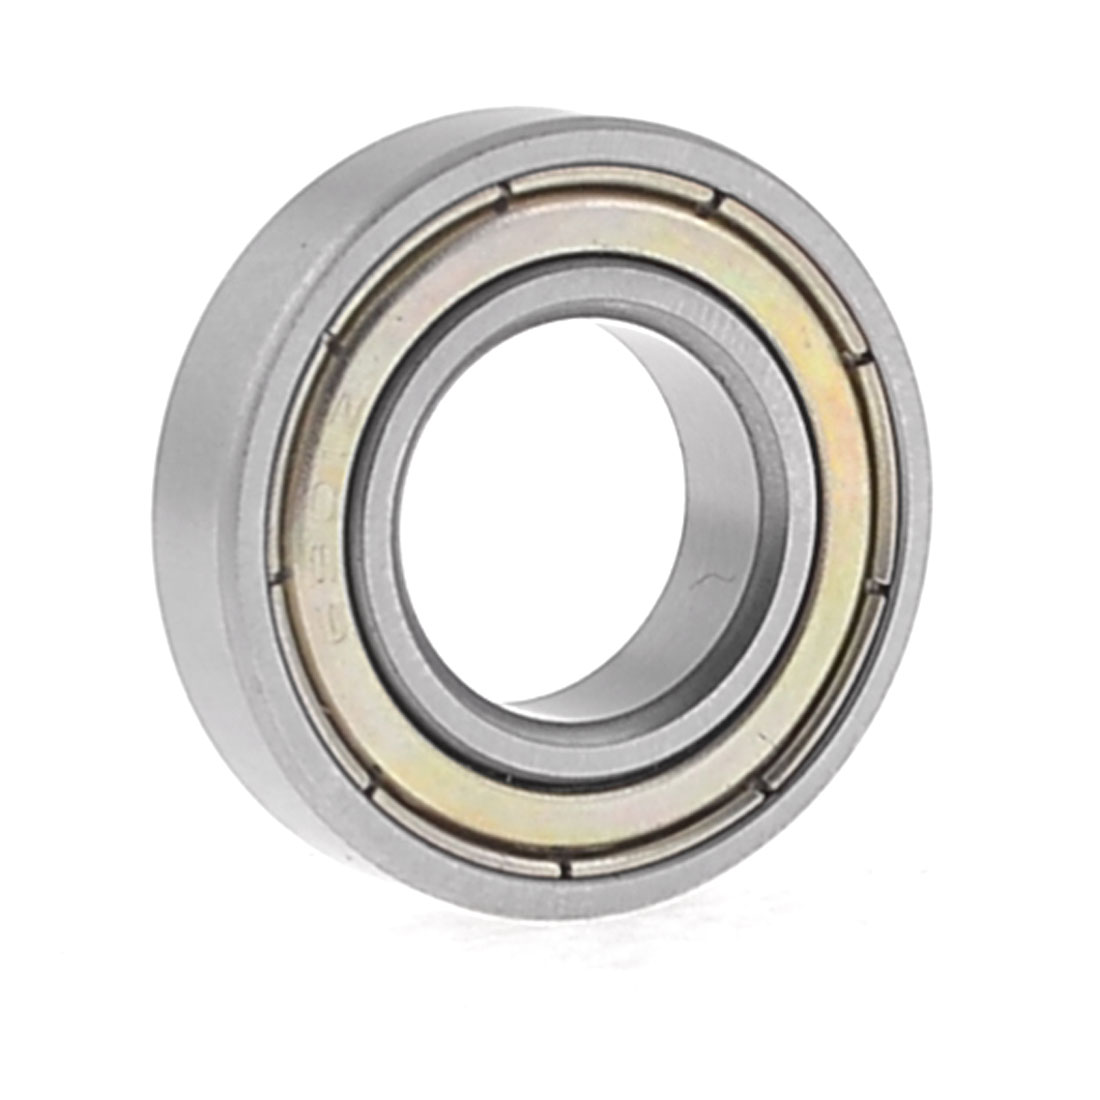 Parts 6901Z Metal Shielded Deep Groove Ball Bearing 24mm x 12mm x 6mm